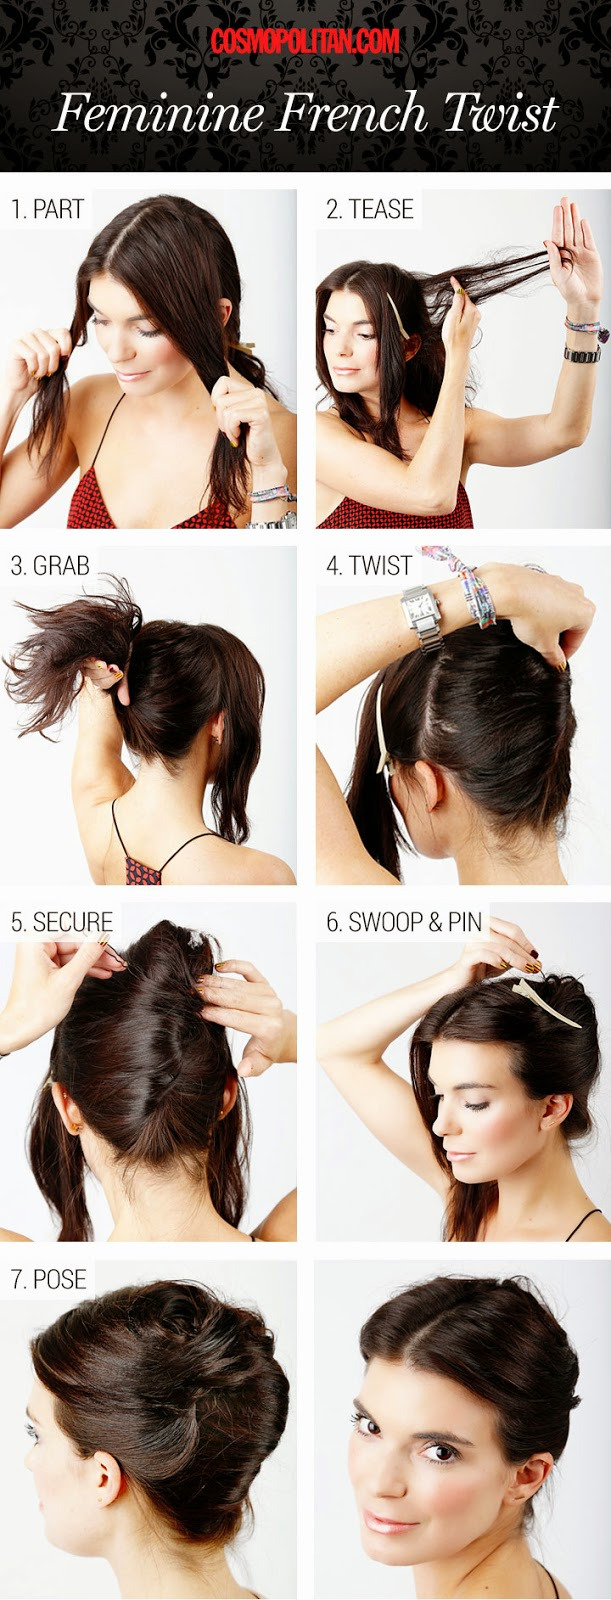 french twist hairstyle hair tutorial. Amazingly easy to make french twist hairstyle. French twist hair tutorial